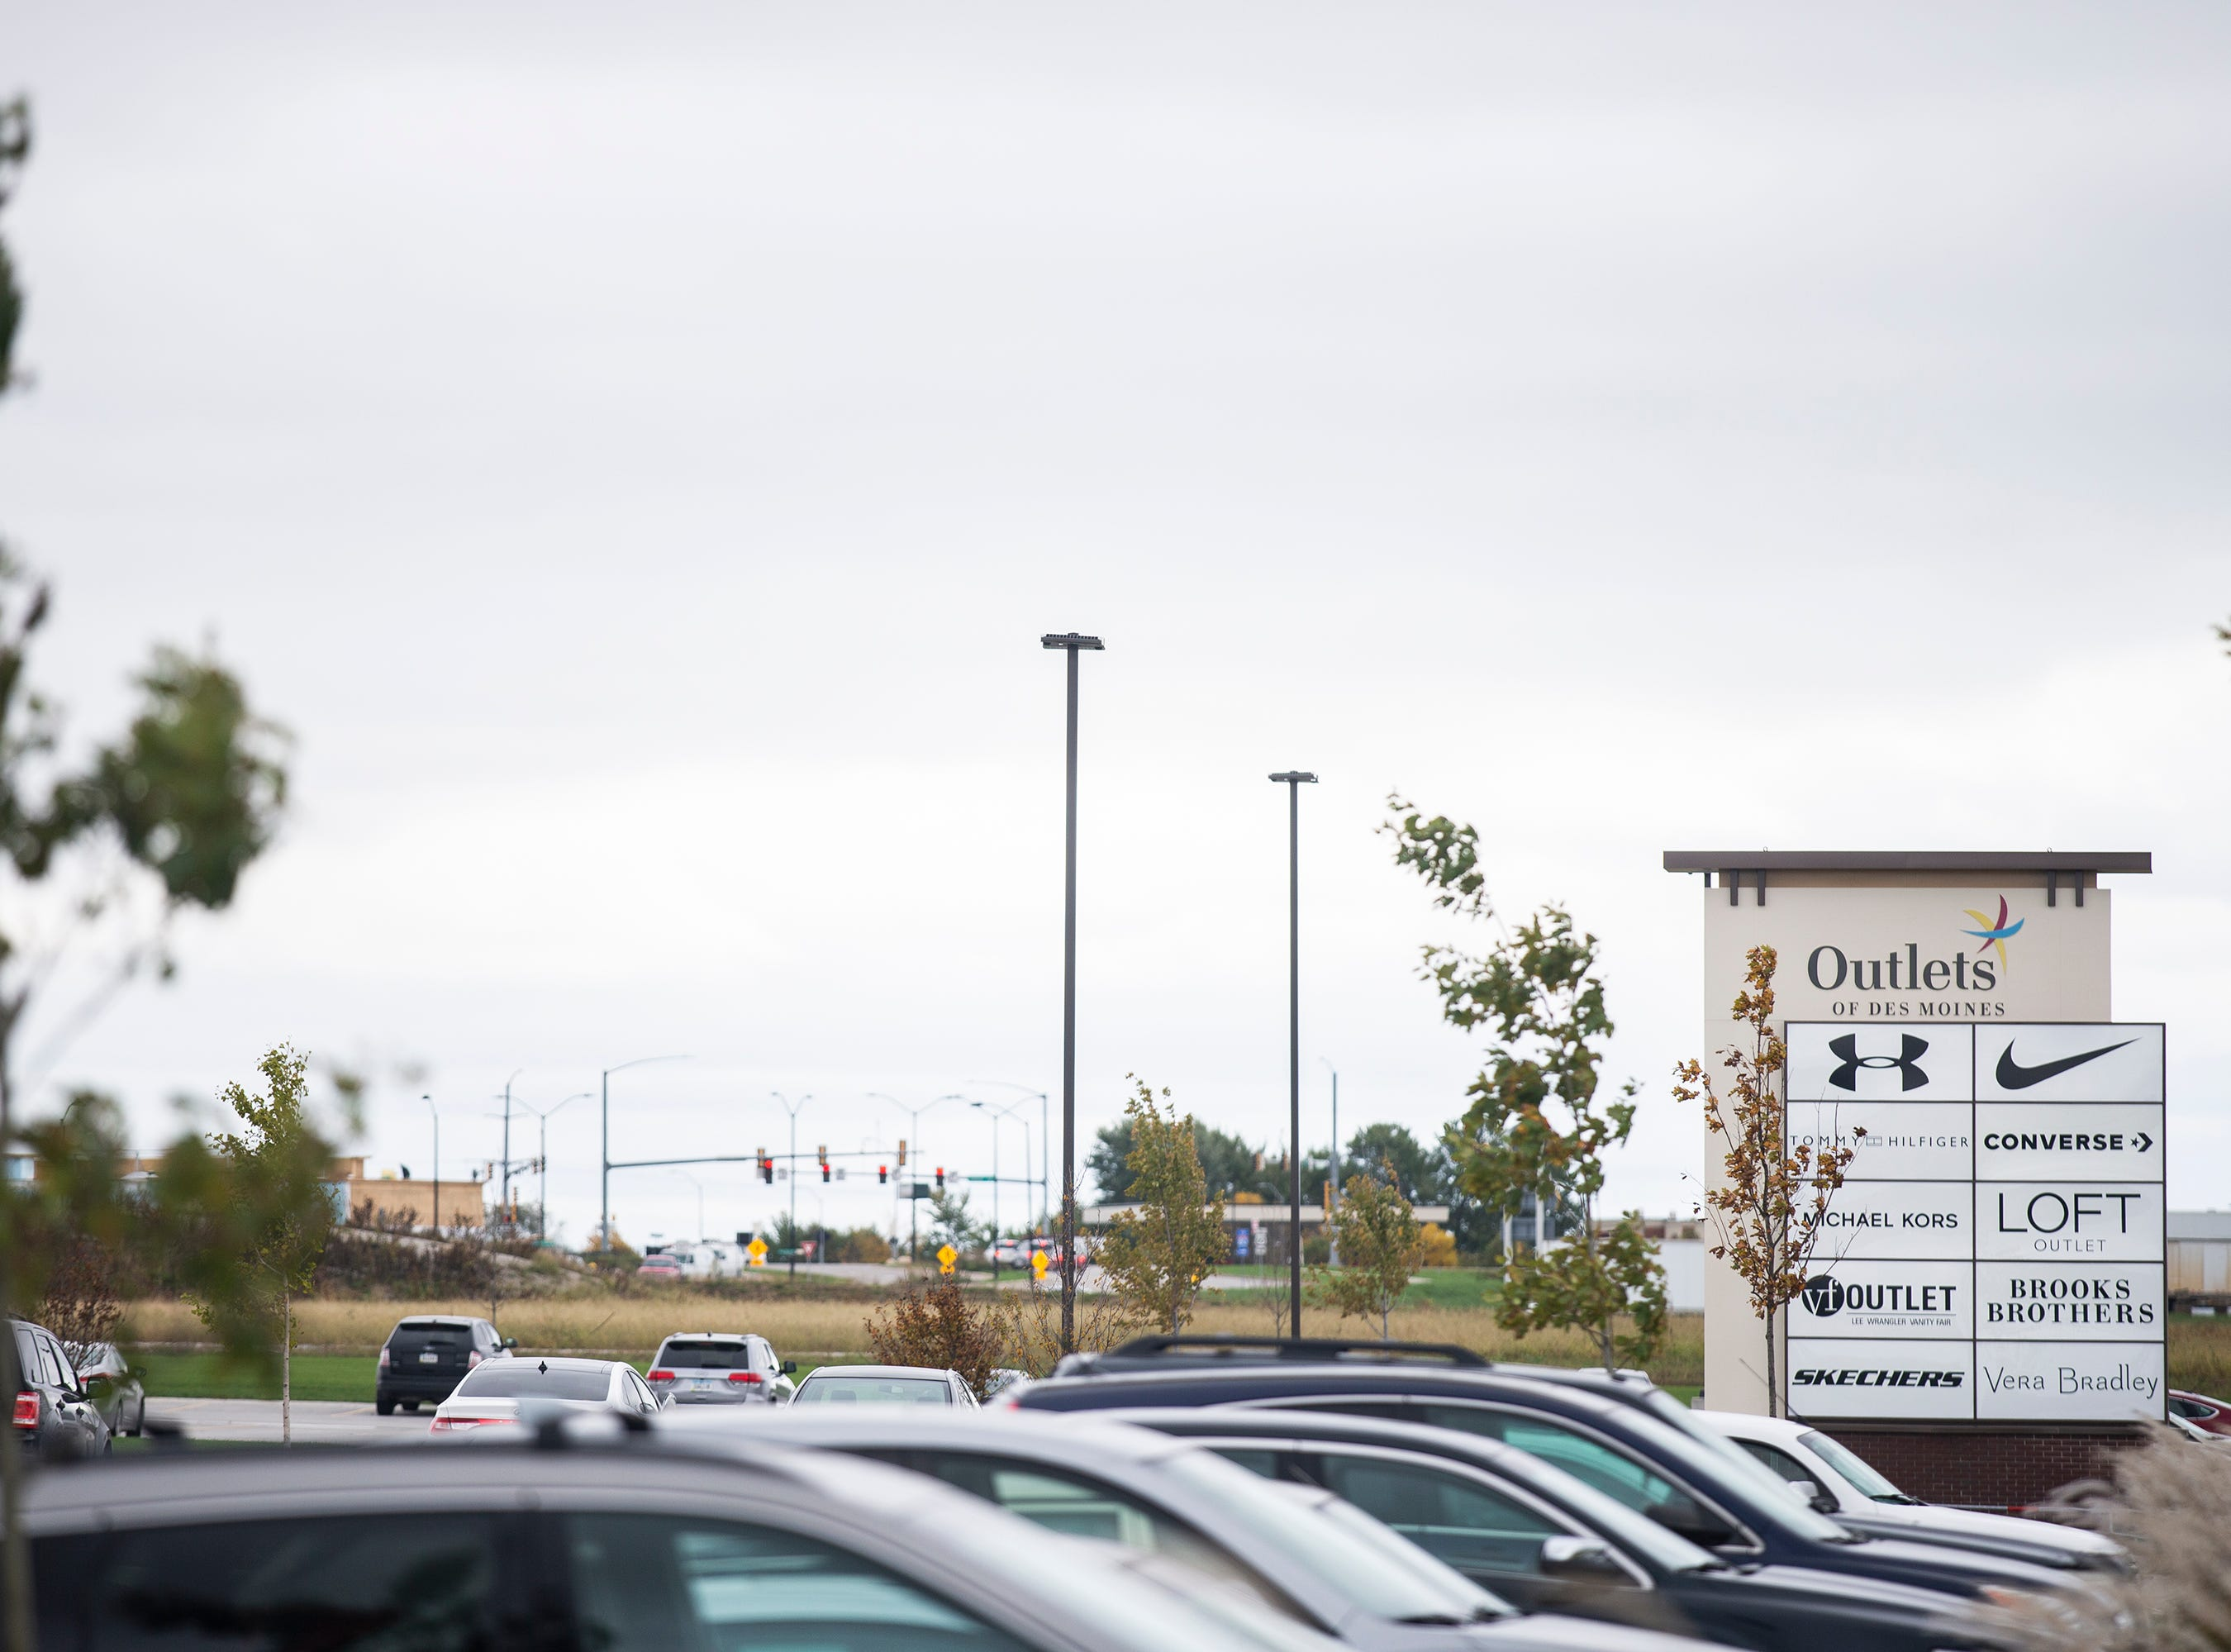 The Outlets of Des Moines has been open for a year this month, on Wednesday, Oct. 10, 2018, in Altoona. The 300,000-square-foot center has 40 stores and three food shops with more stores planned.